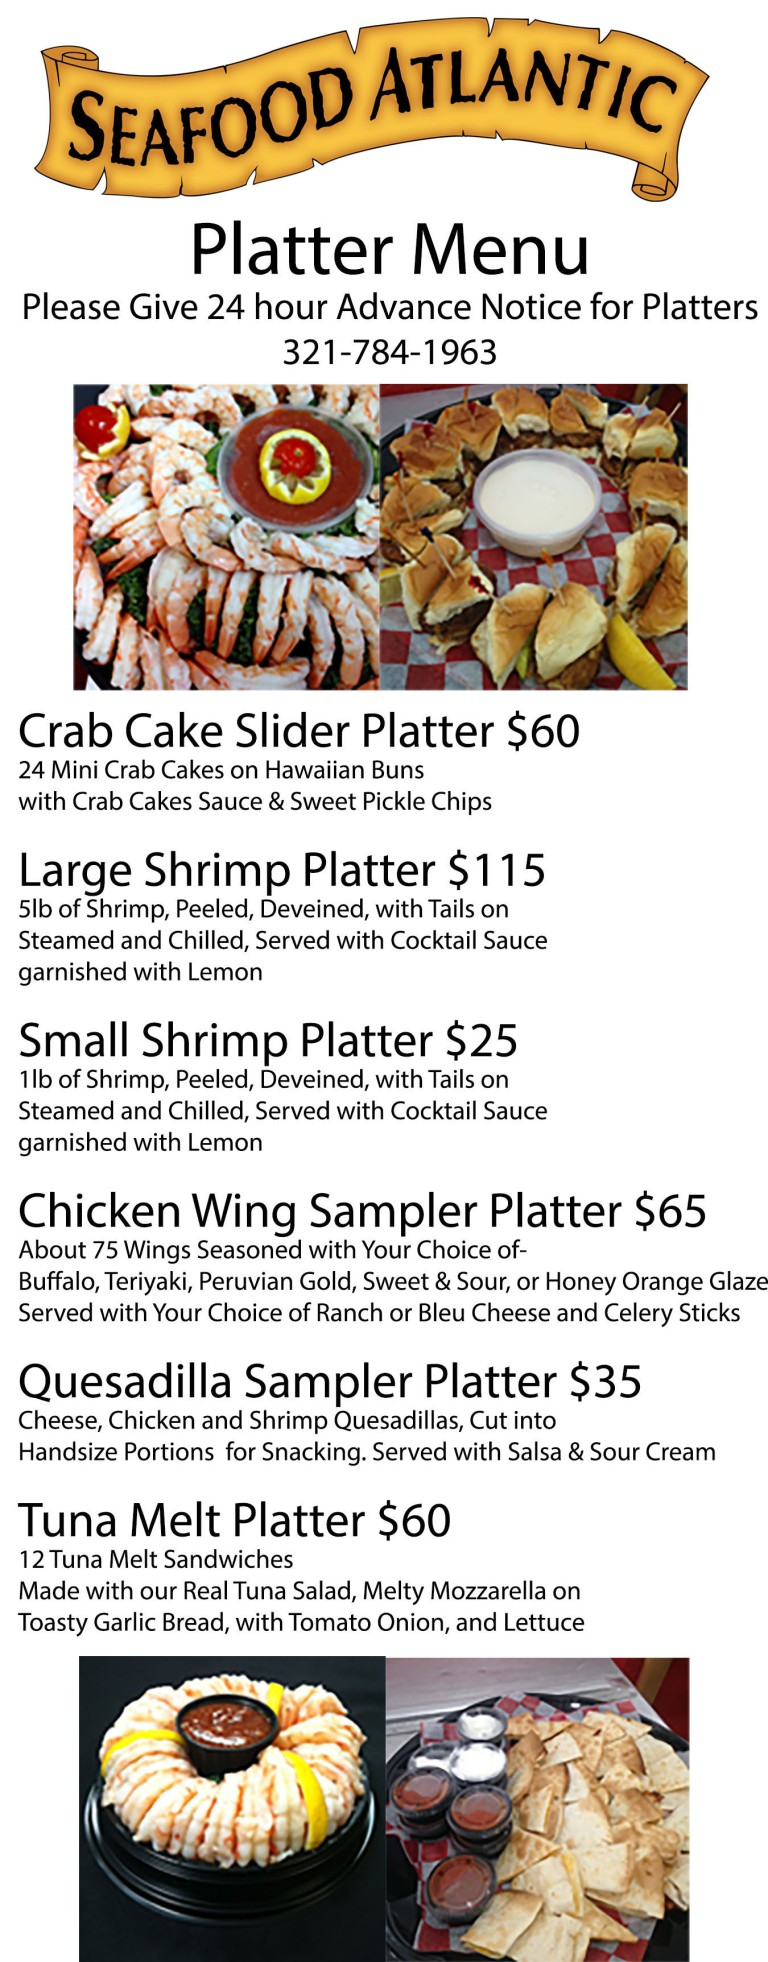 Seafood Atlantic platter menu single